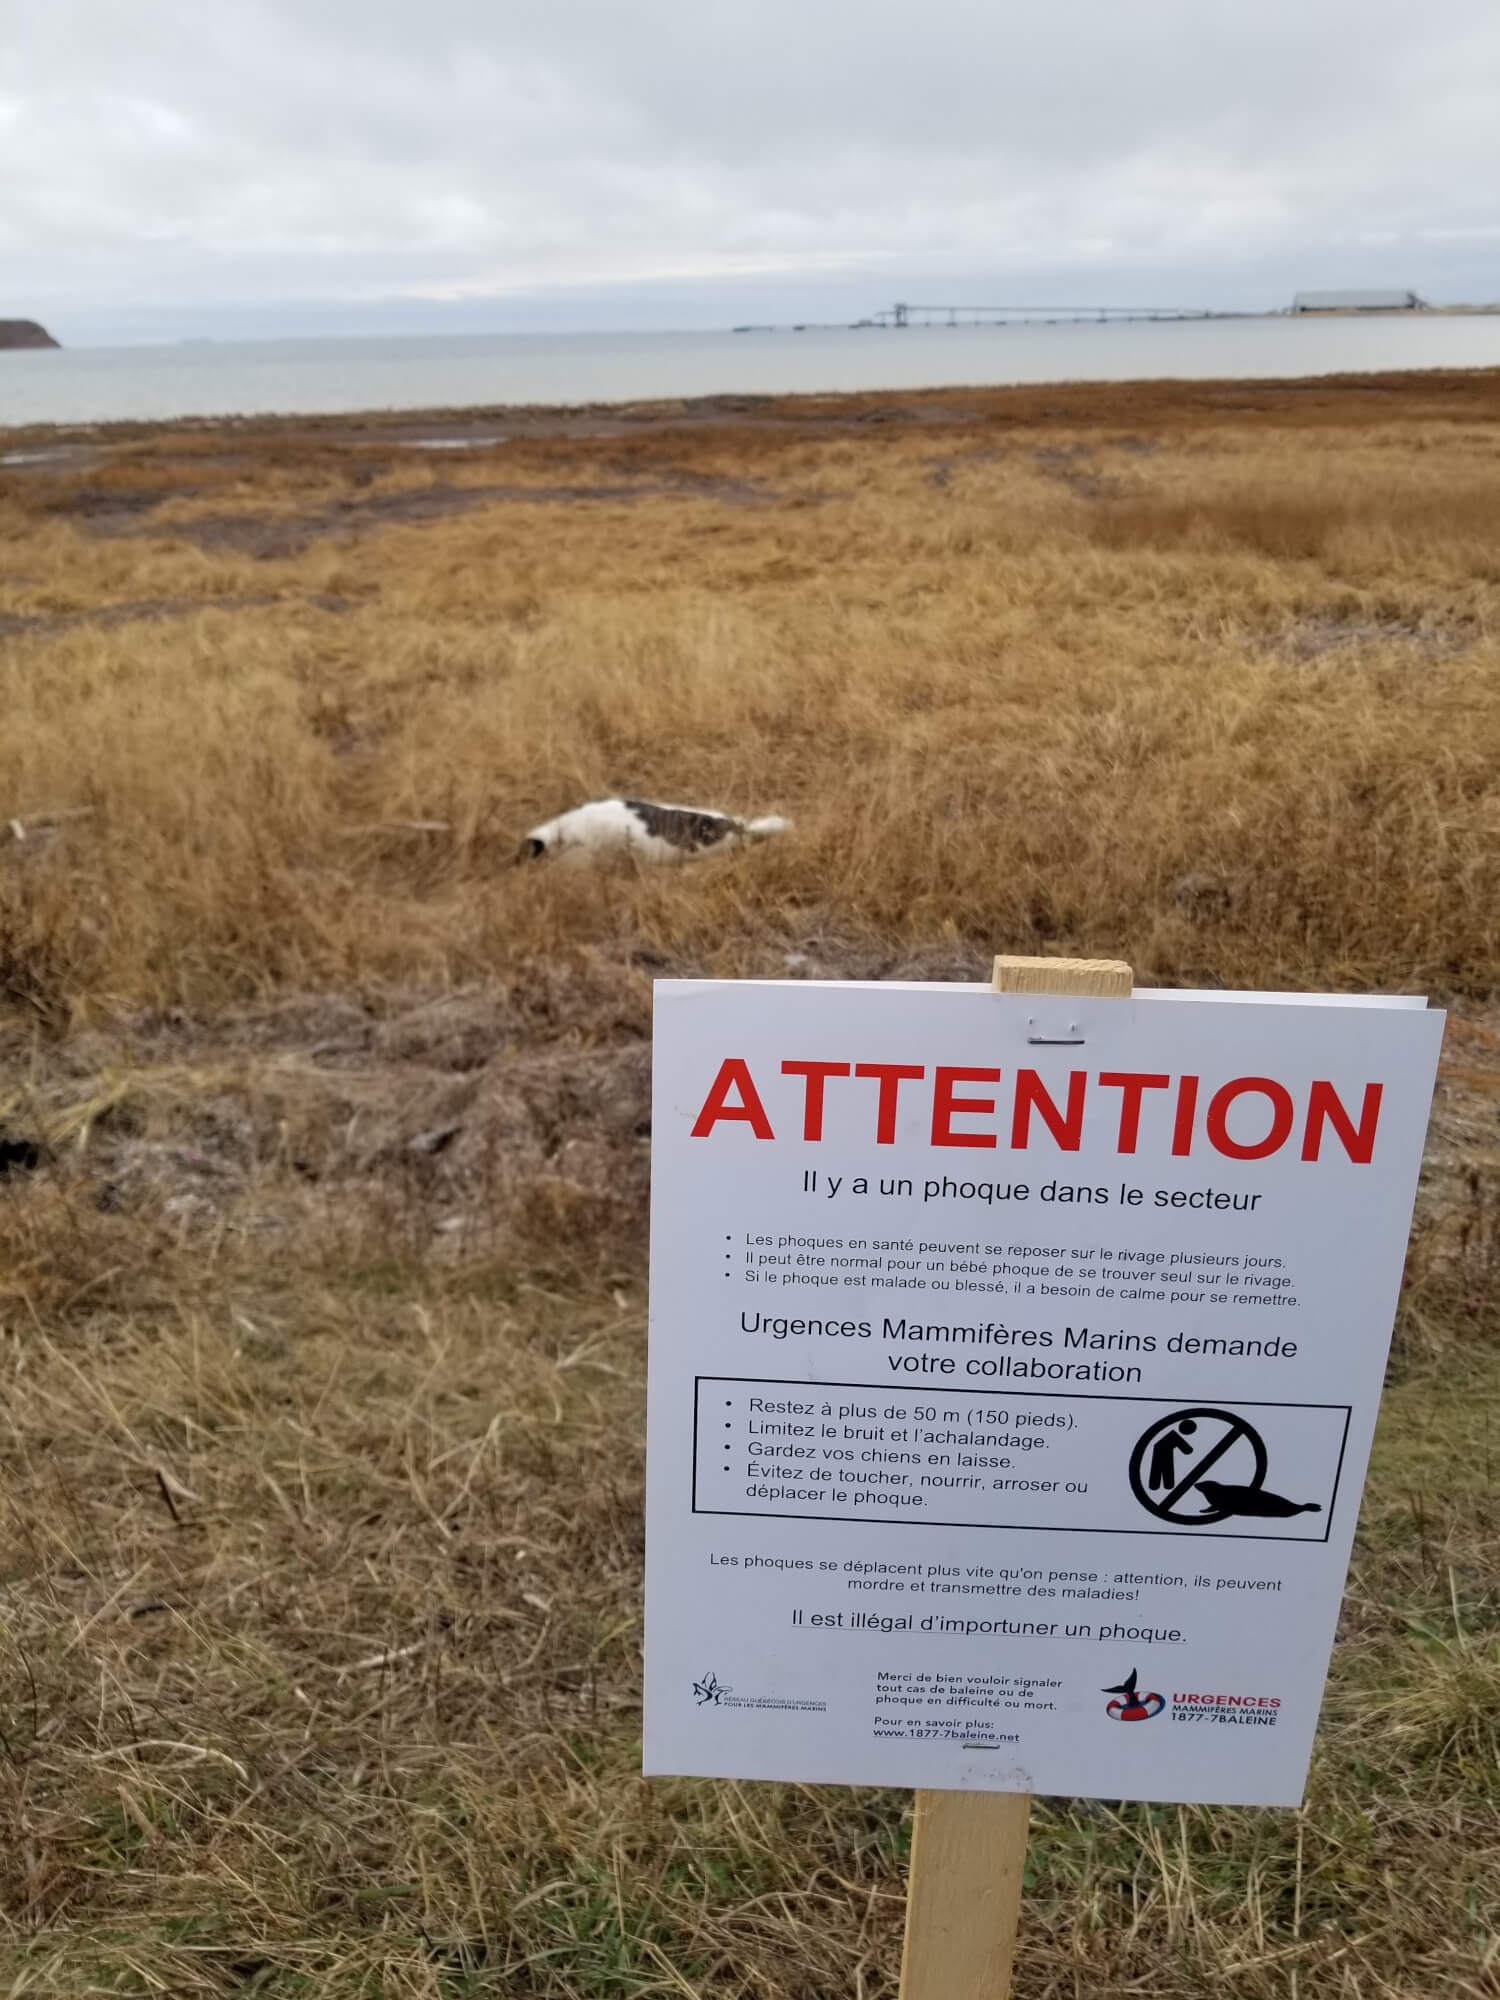 A Network poster is used to raise public awareness to keep a minimum distance of 150 feet from seals.